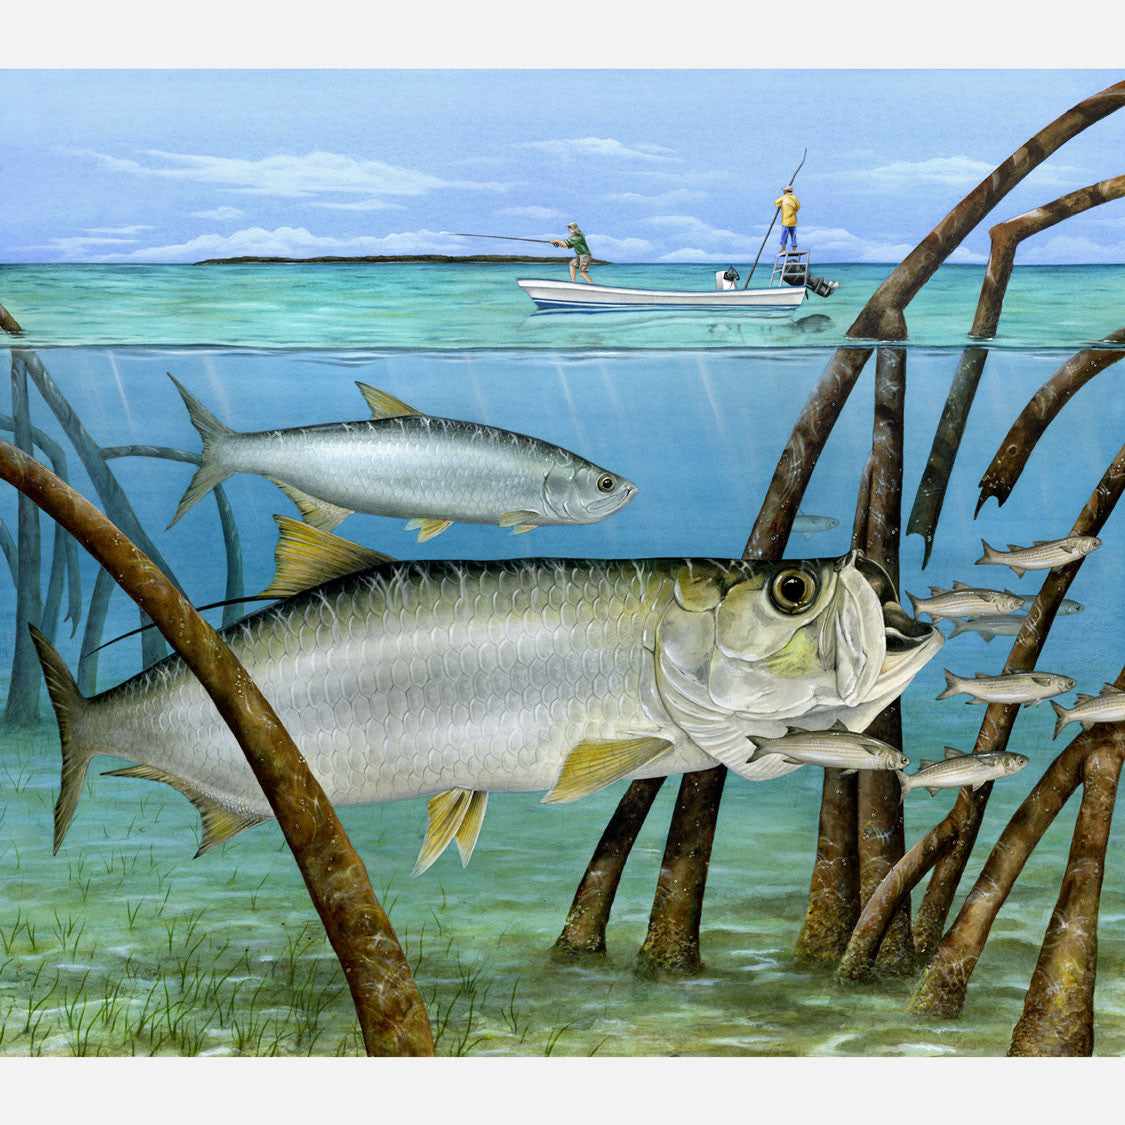 This beautiful illustration of Atlantic tarpon, Megalops atlanticus, foraging on mullet in red mangroves is biologically accurate in detail.